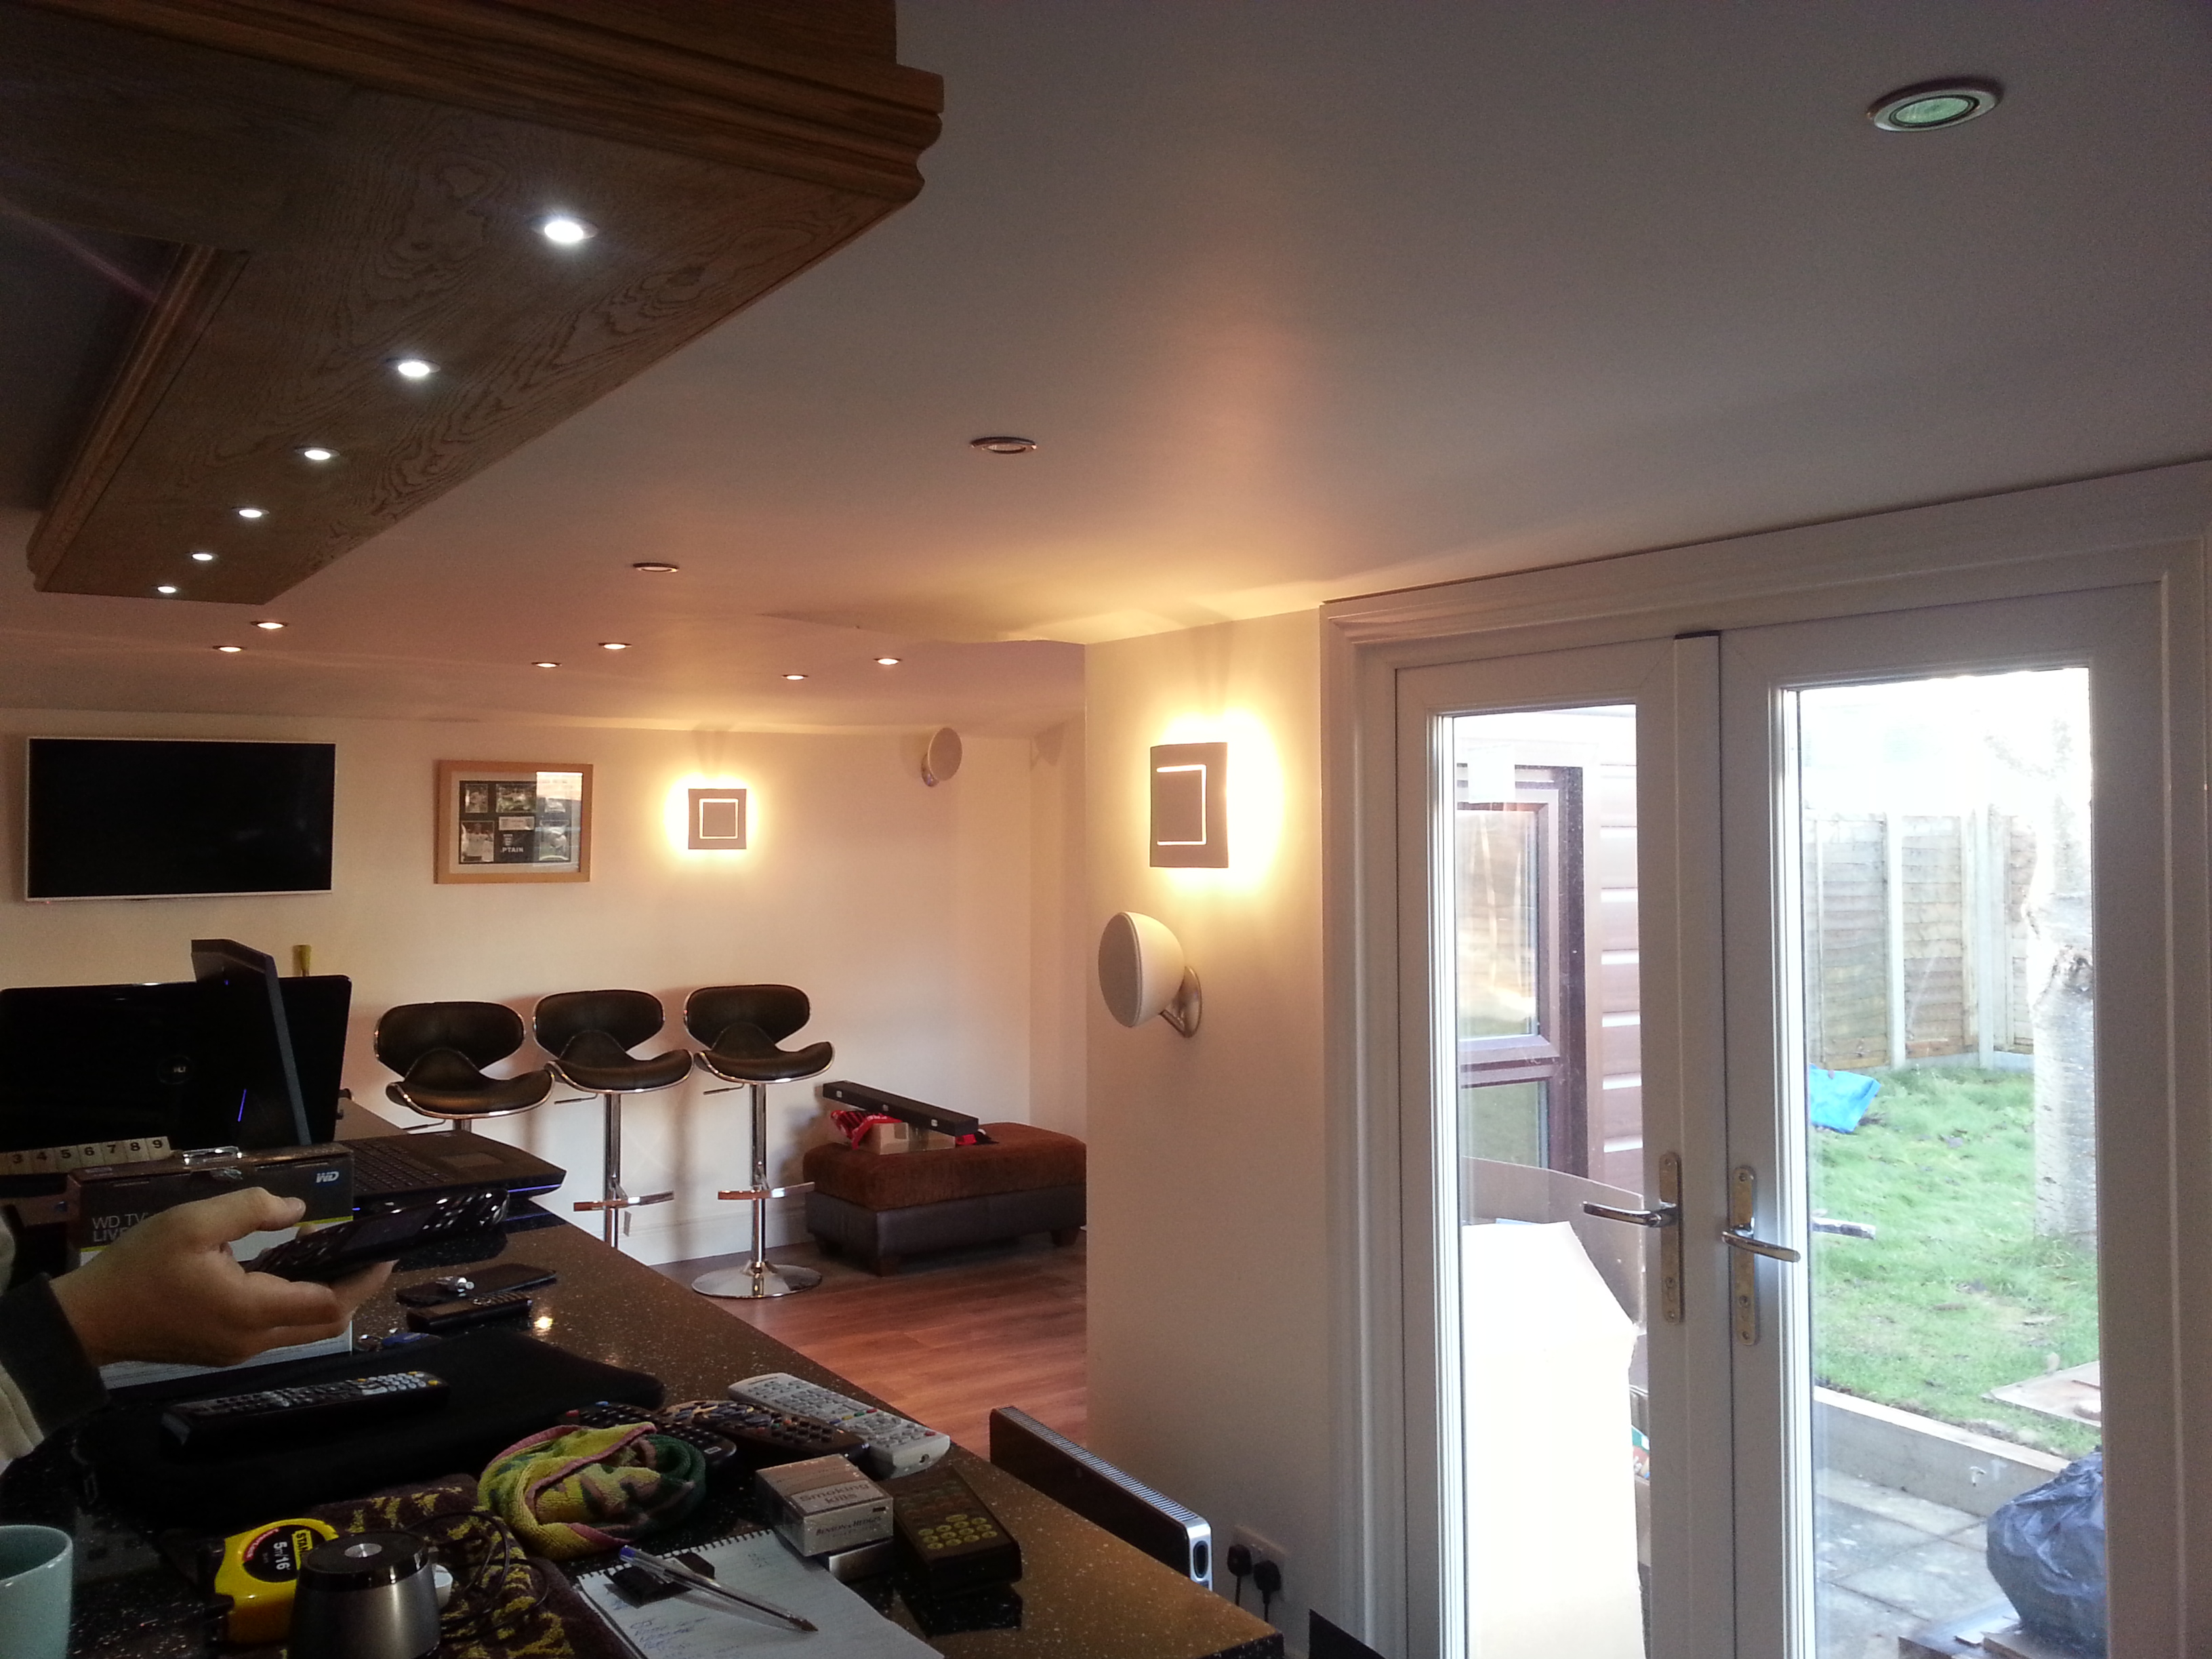 Doddington Aerials Home cinema (8)